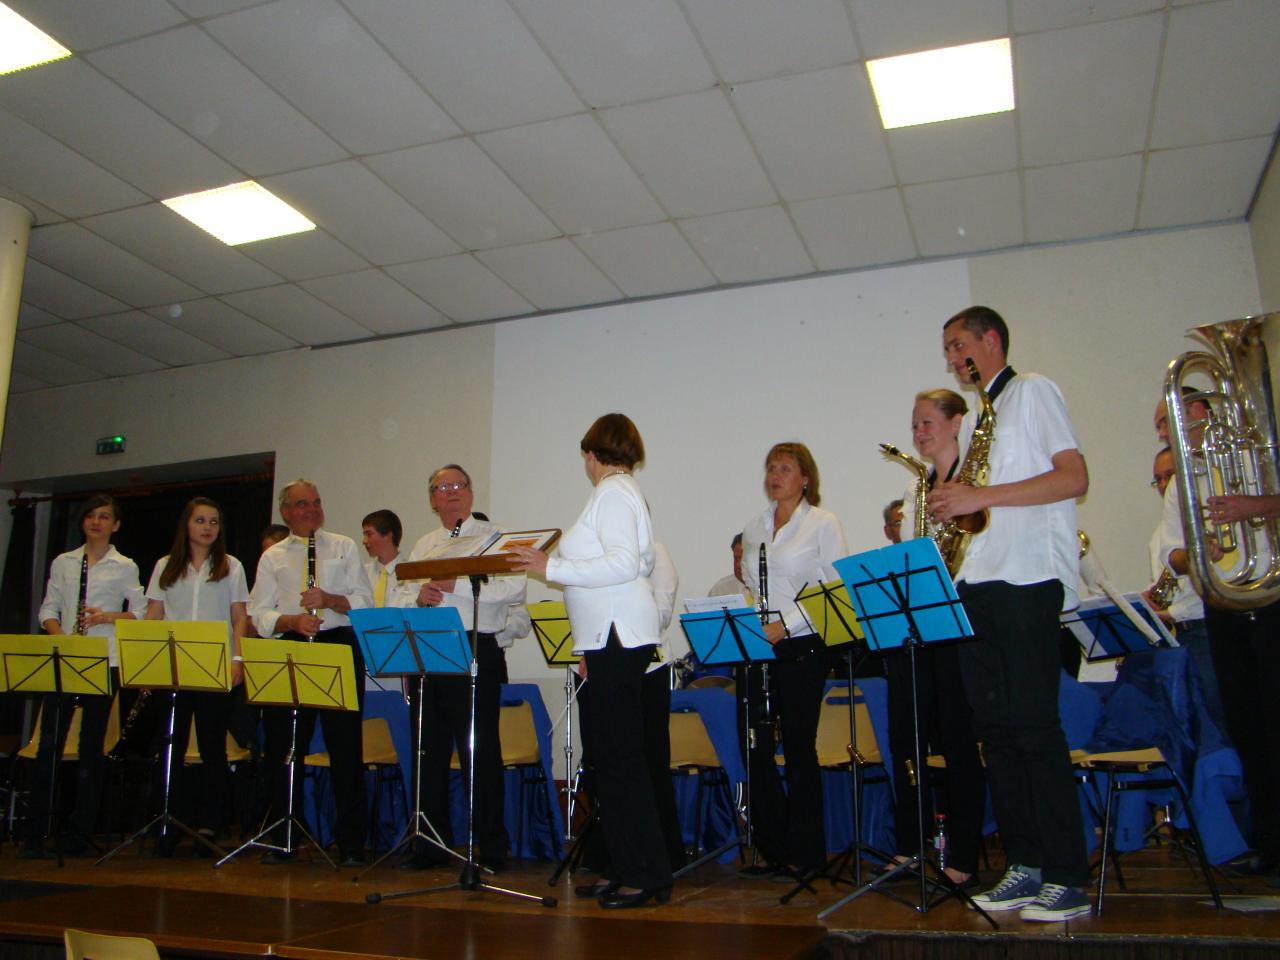 Notre formation musicale